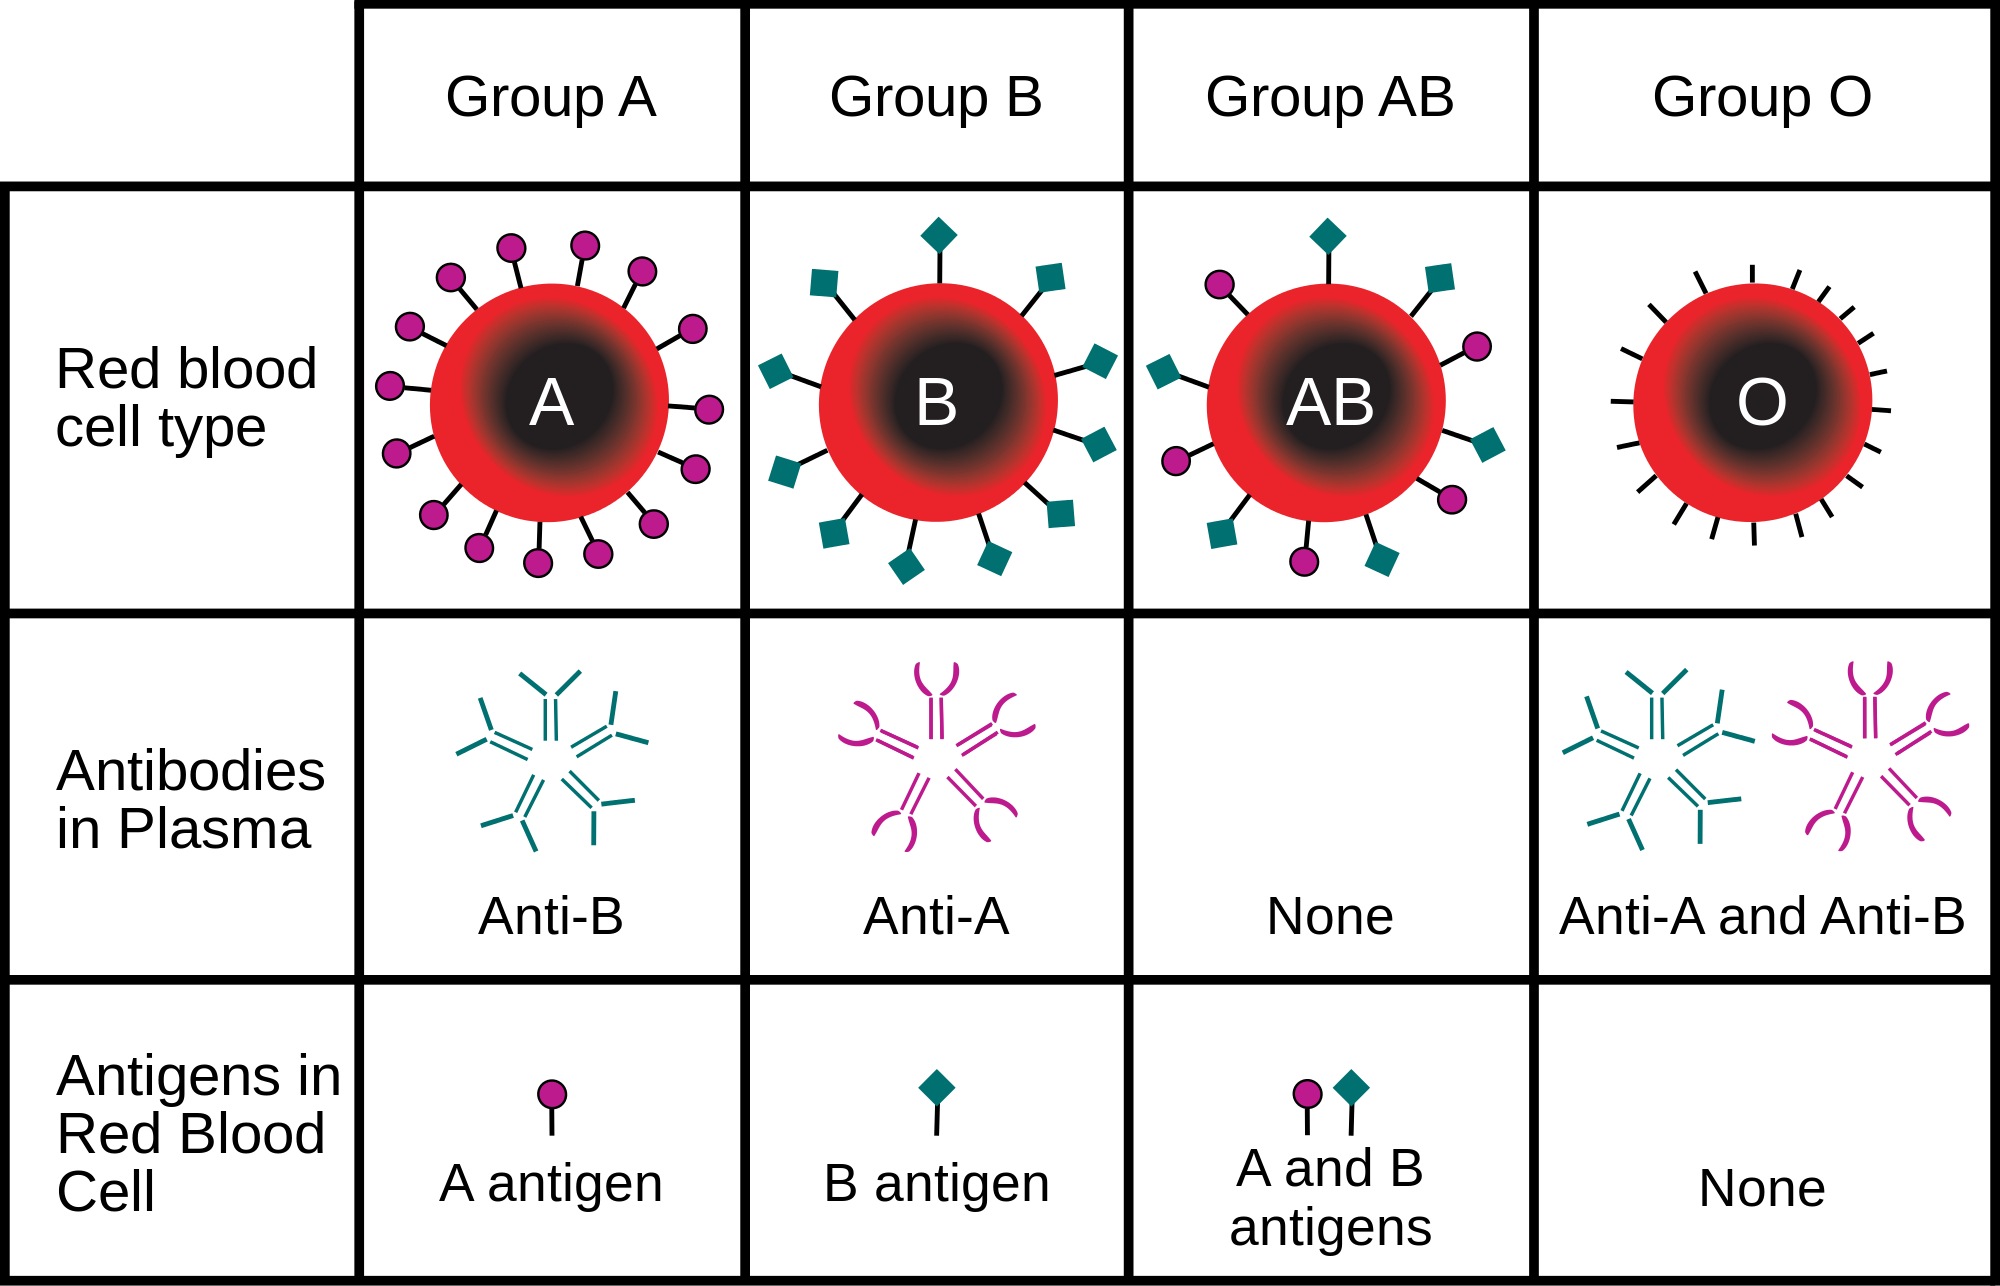 Antigen and antibody relationship between different blood group